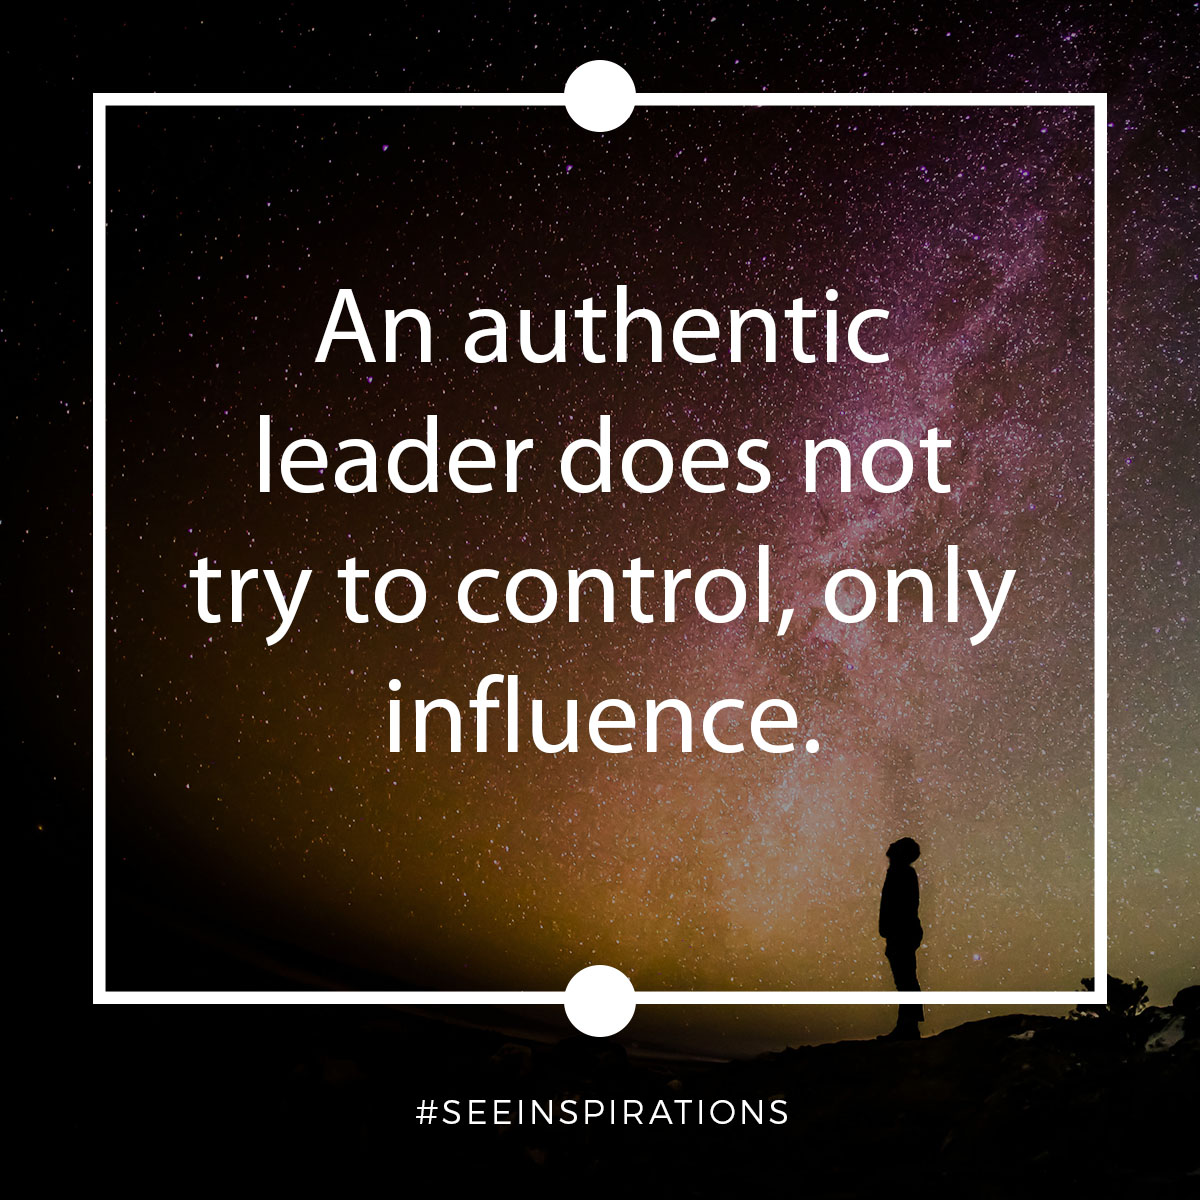 An Authentic Leader does not try to control, only influence.